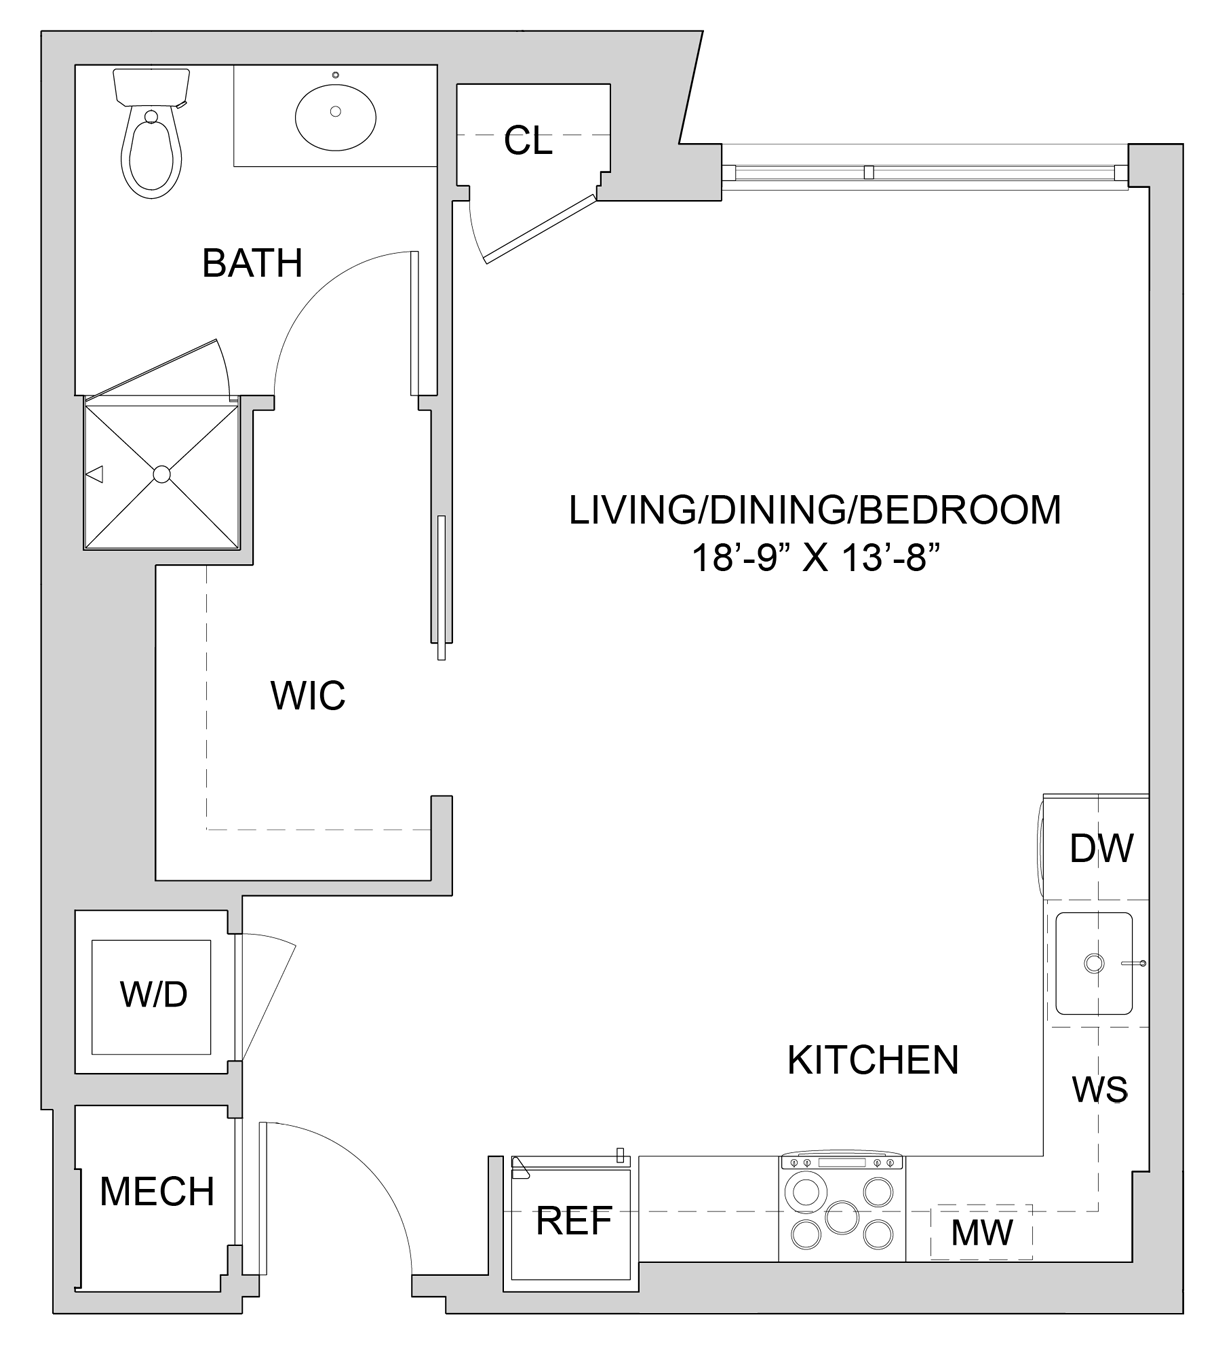 Floorplan N426 Image enlarged